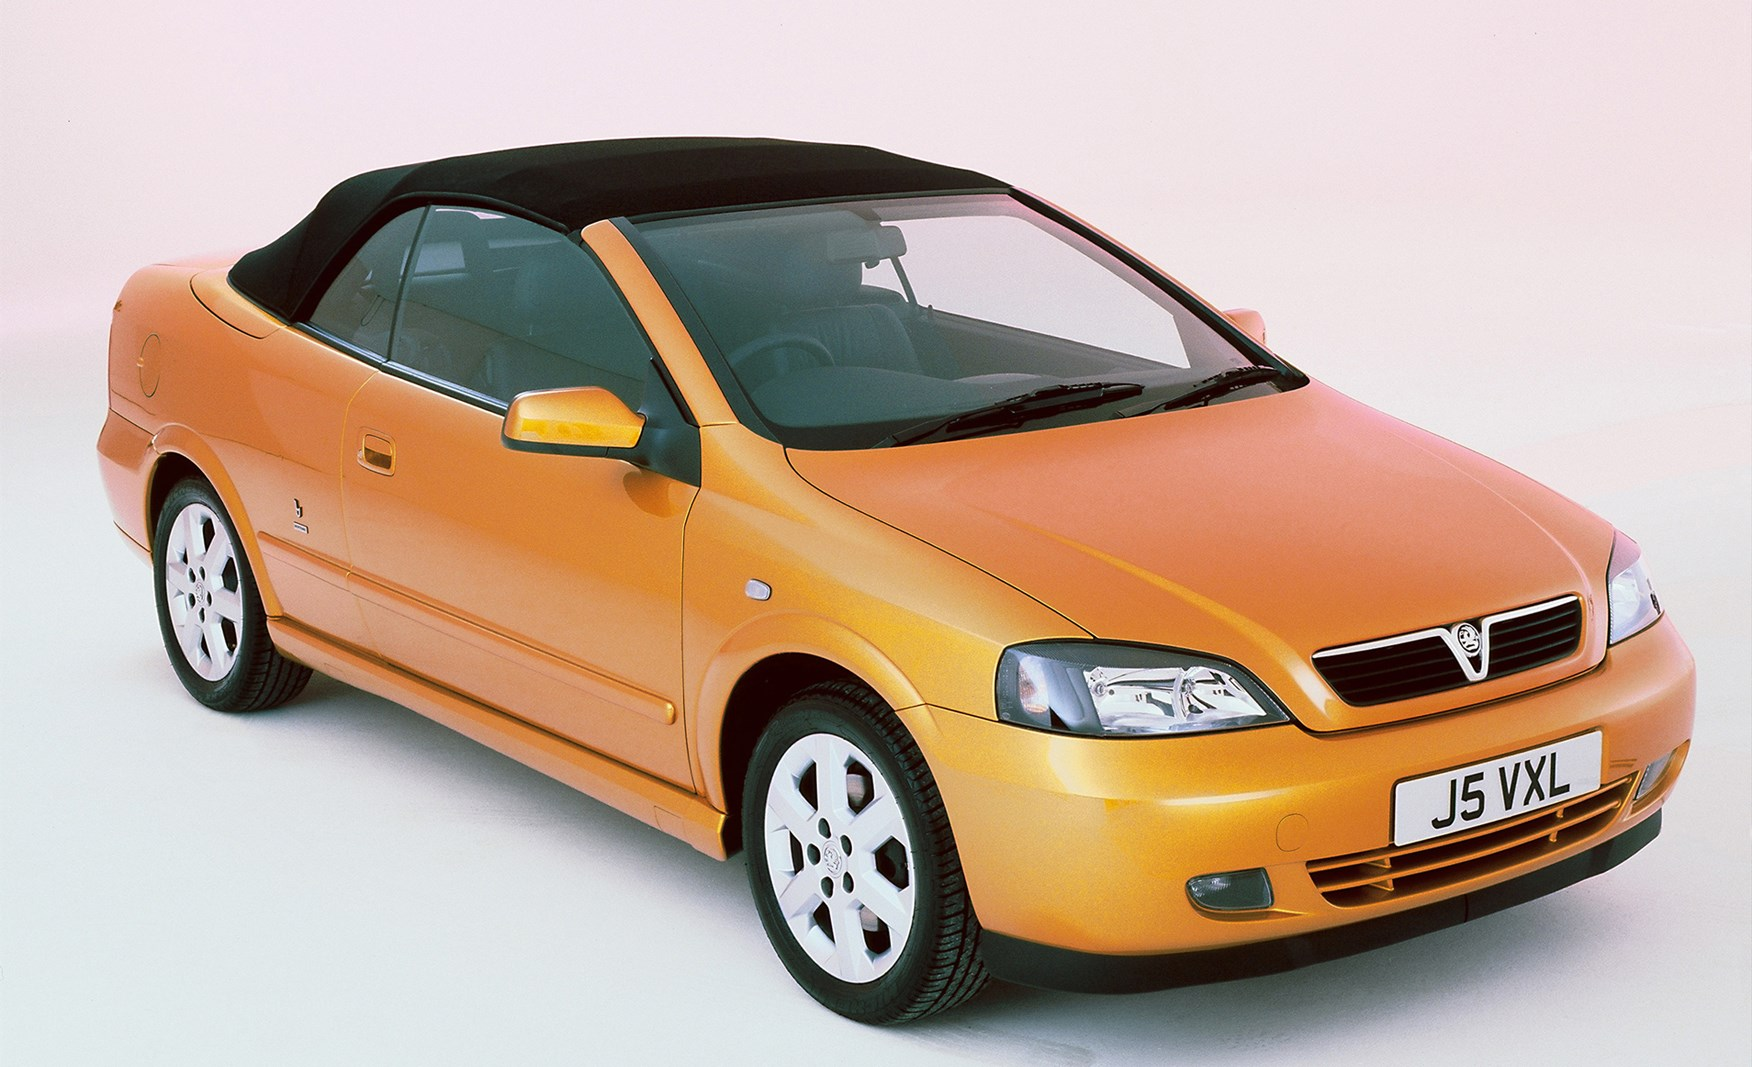 vauxhall astra convertible review 2001 2005 parkers. Black Bedroom Furniture Sets. Home Design Ideas